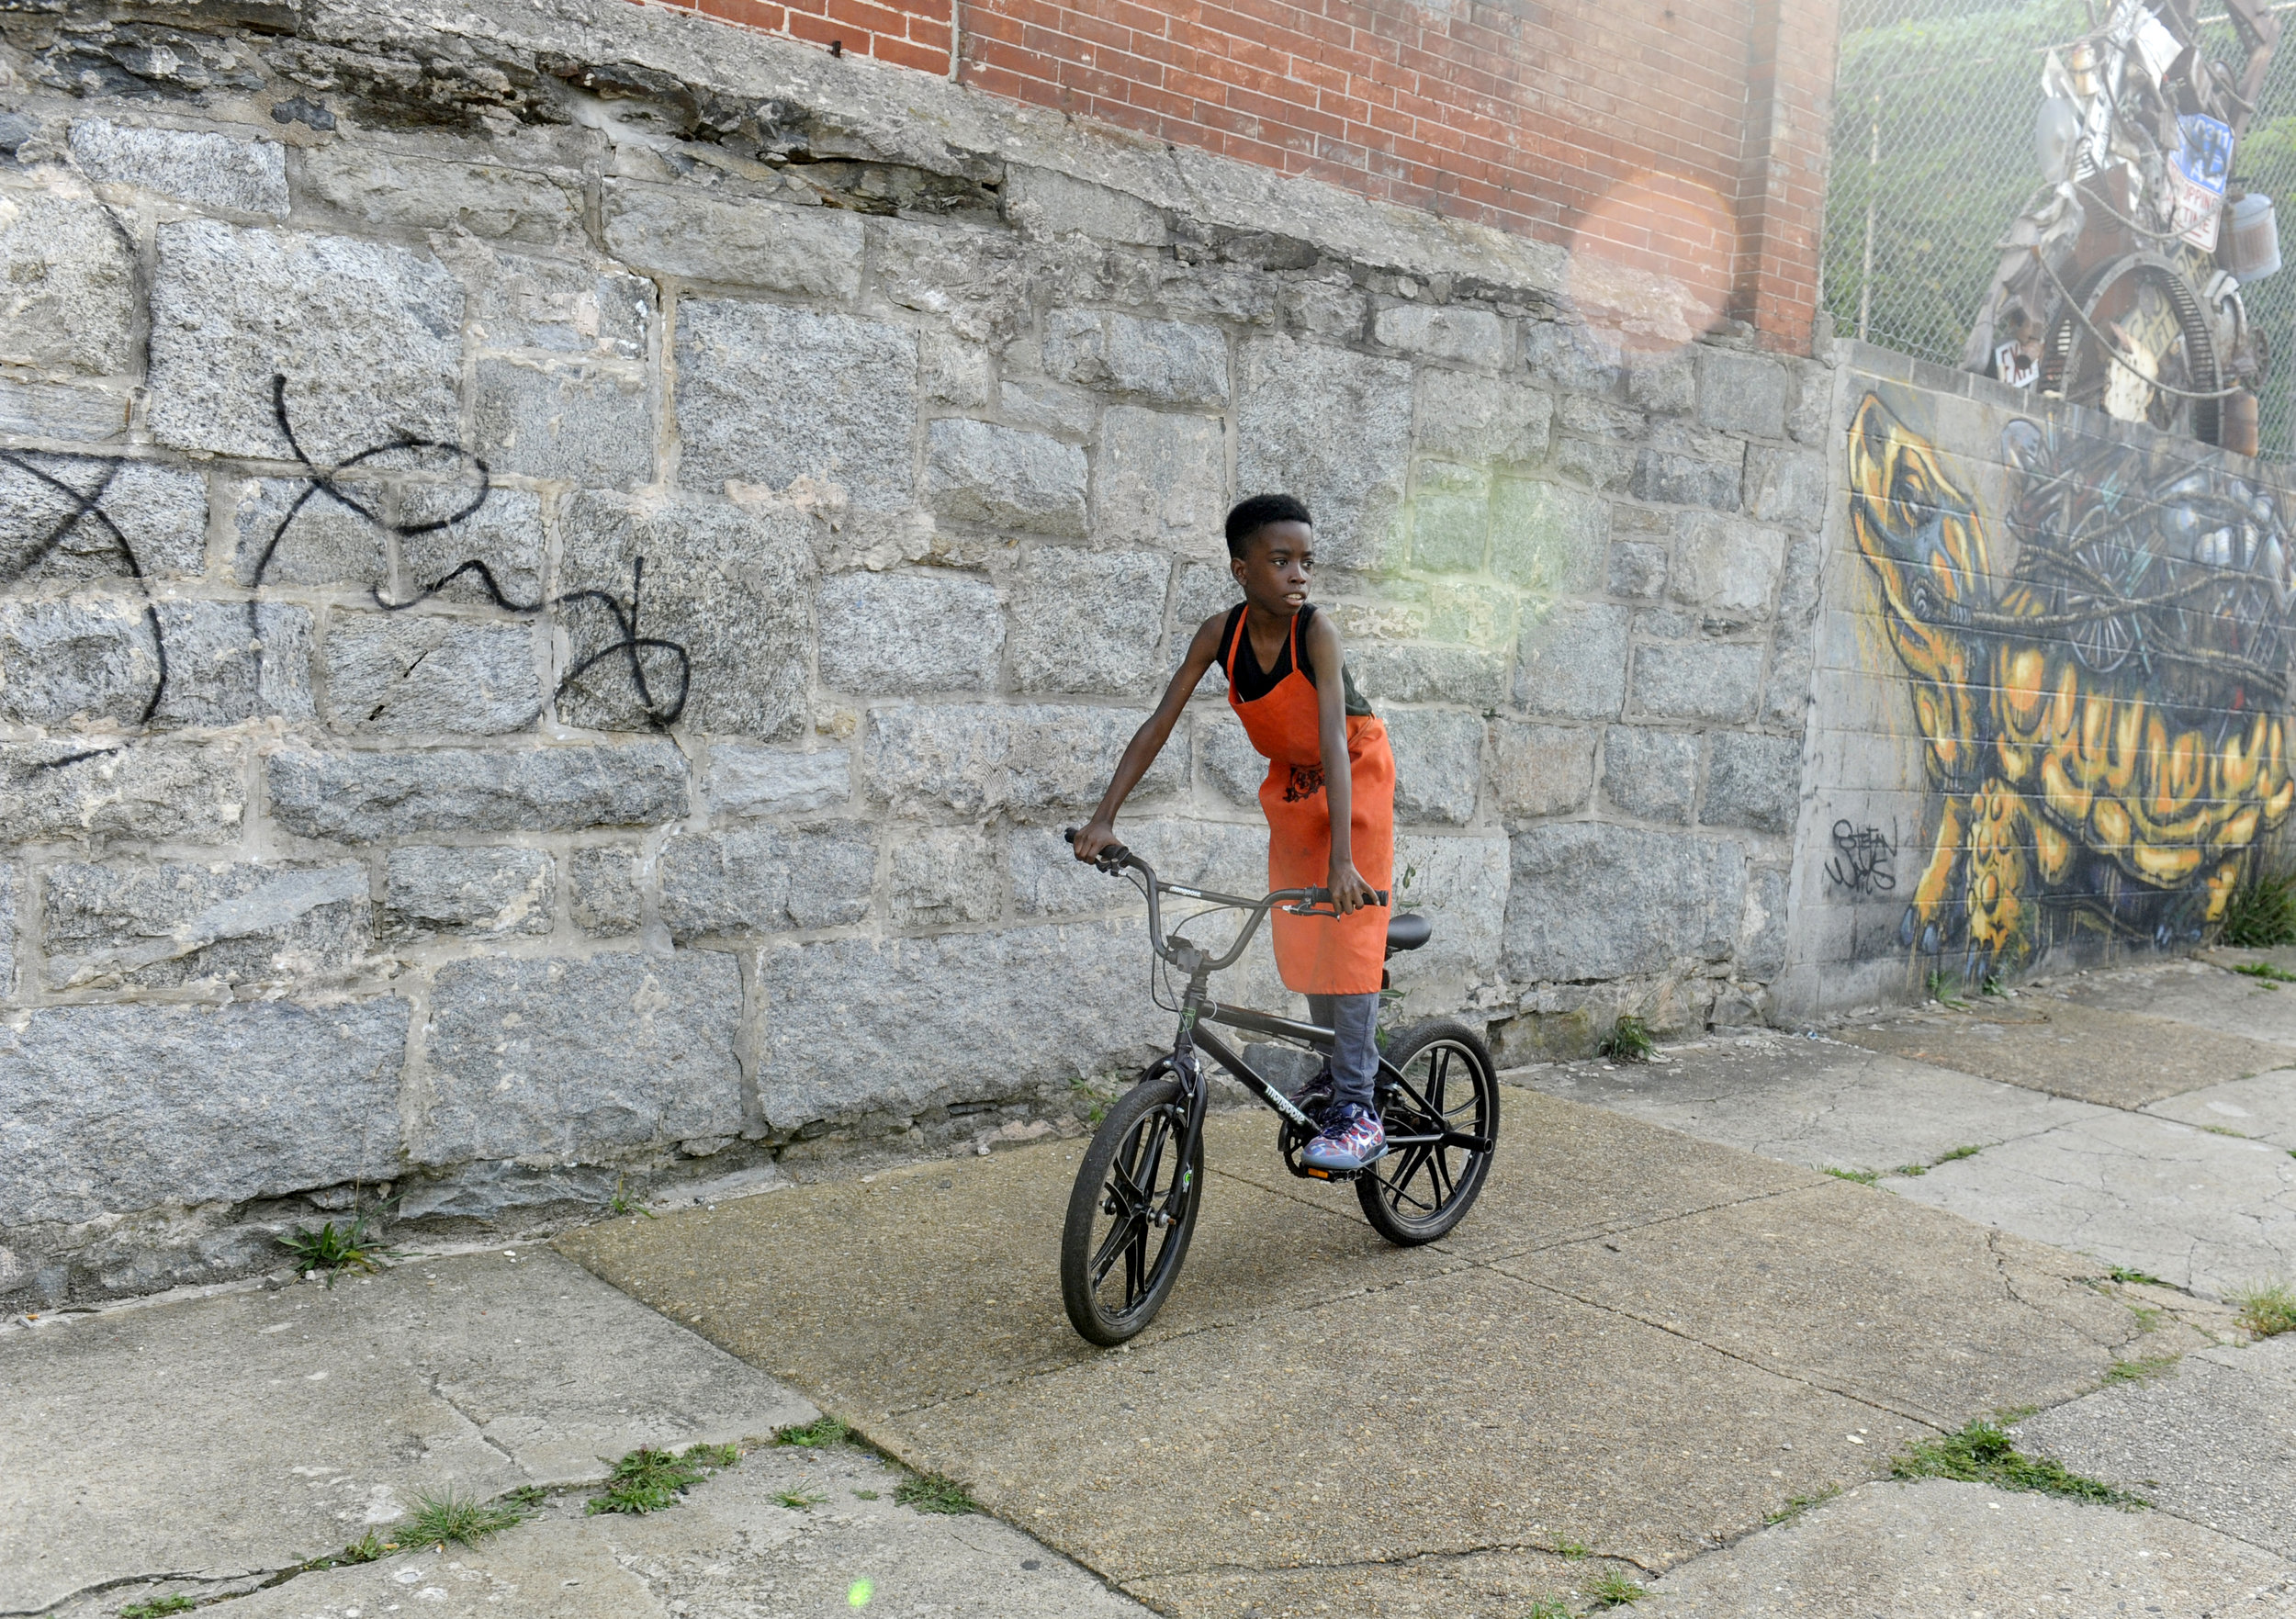 Tisean Muhummad, 12, rides outside BYKE headquarters on E Oliver Street in Baltimore, Maryland on Thursday, September 8, 2016. The Baltimore Youth Kinetic Energy Collective (BYKE) is a youth empowerment after-school program.